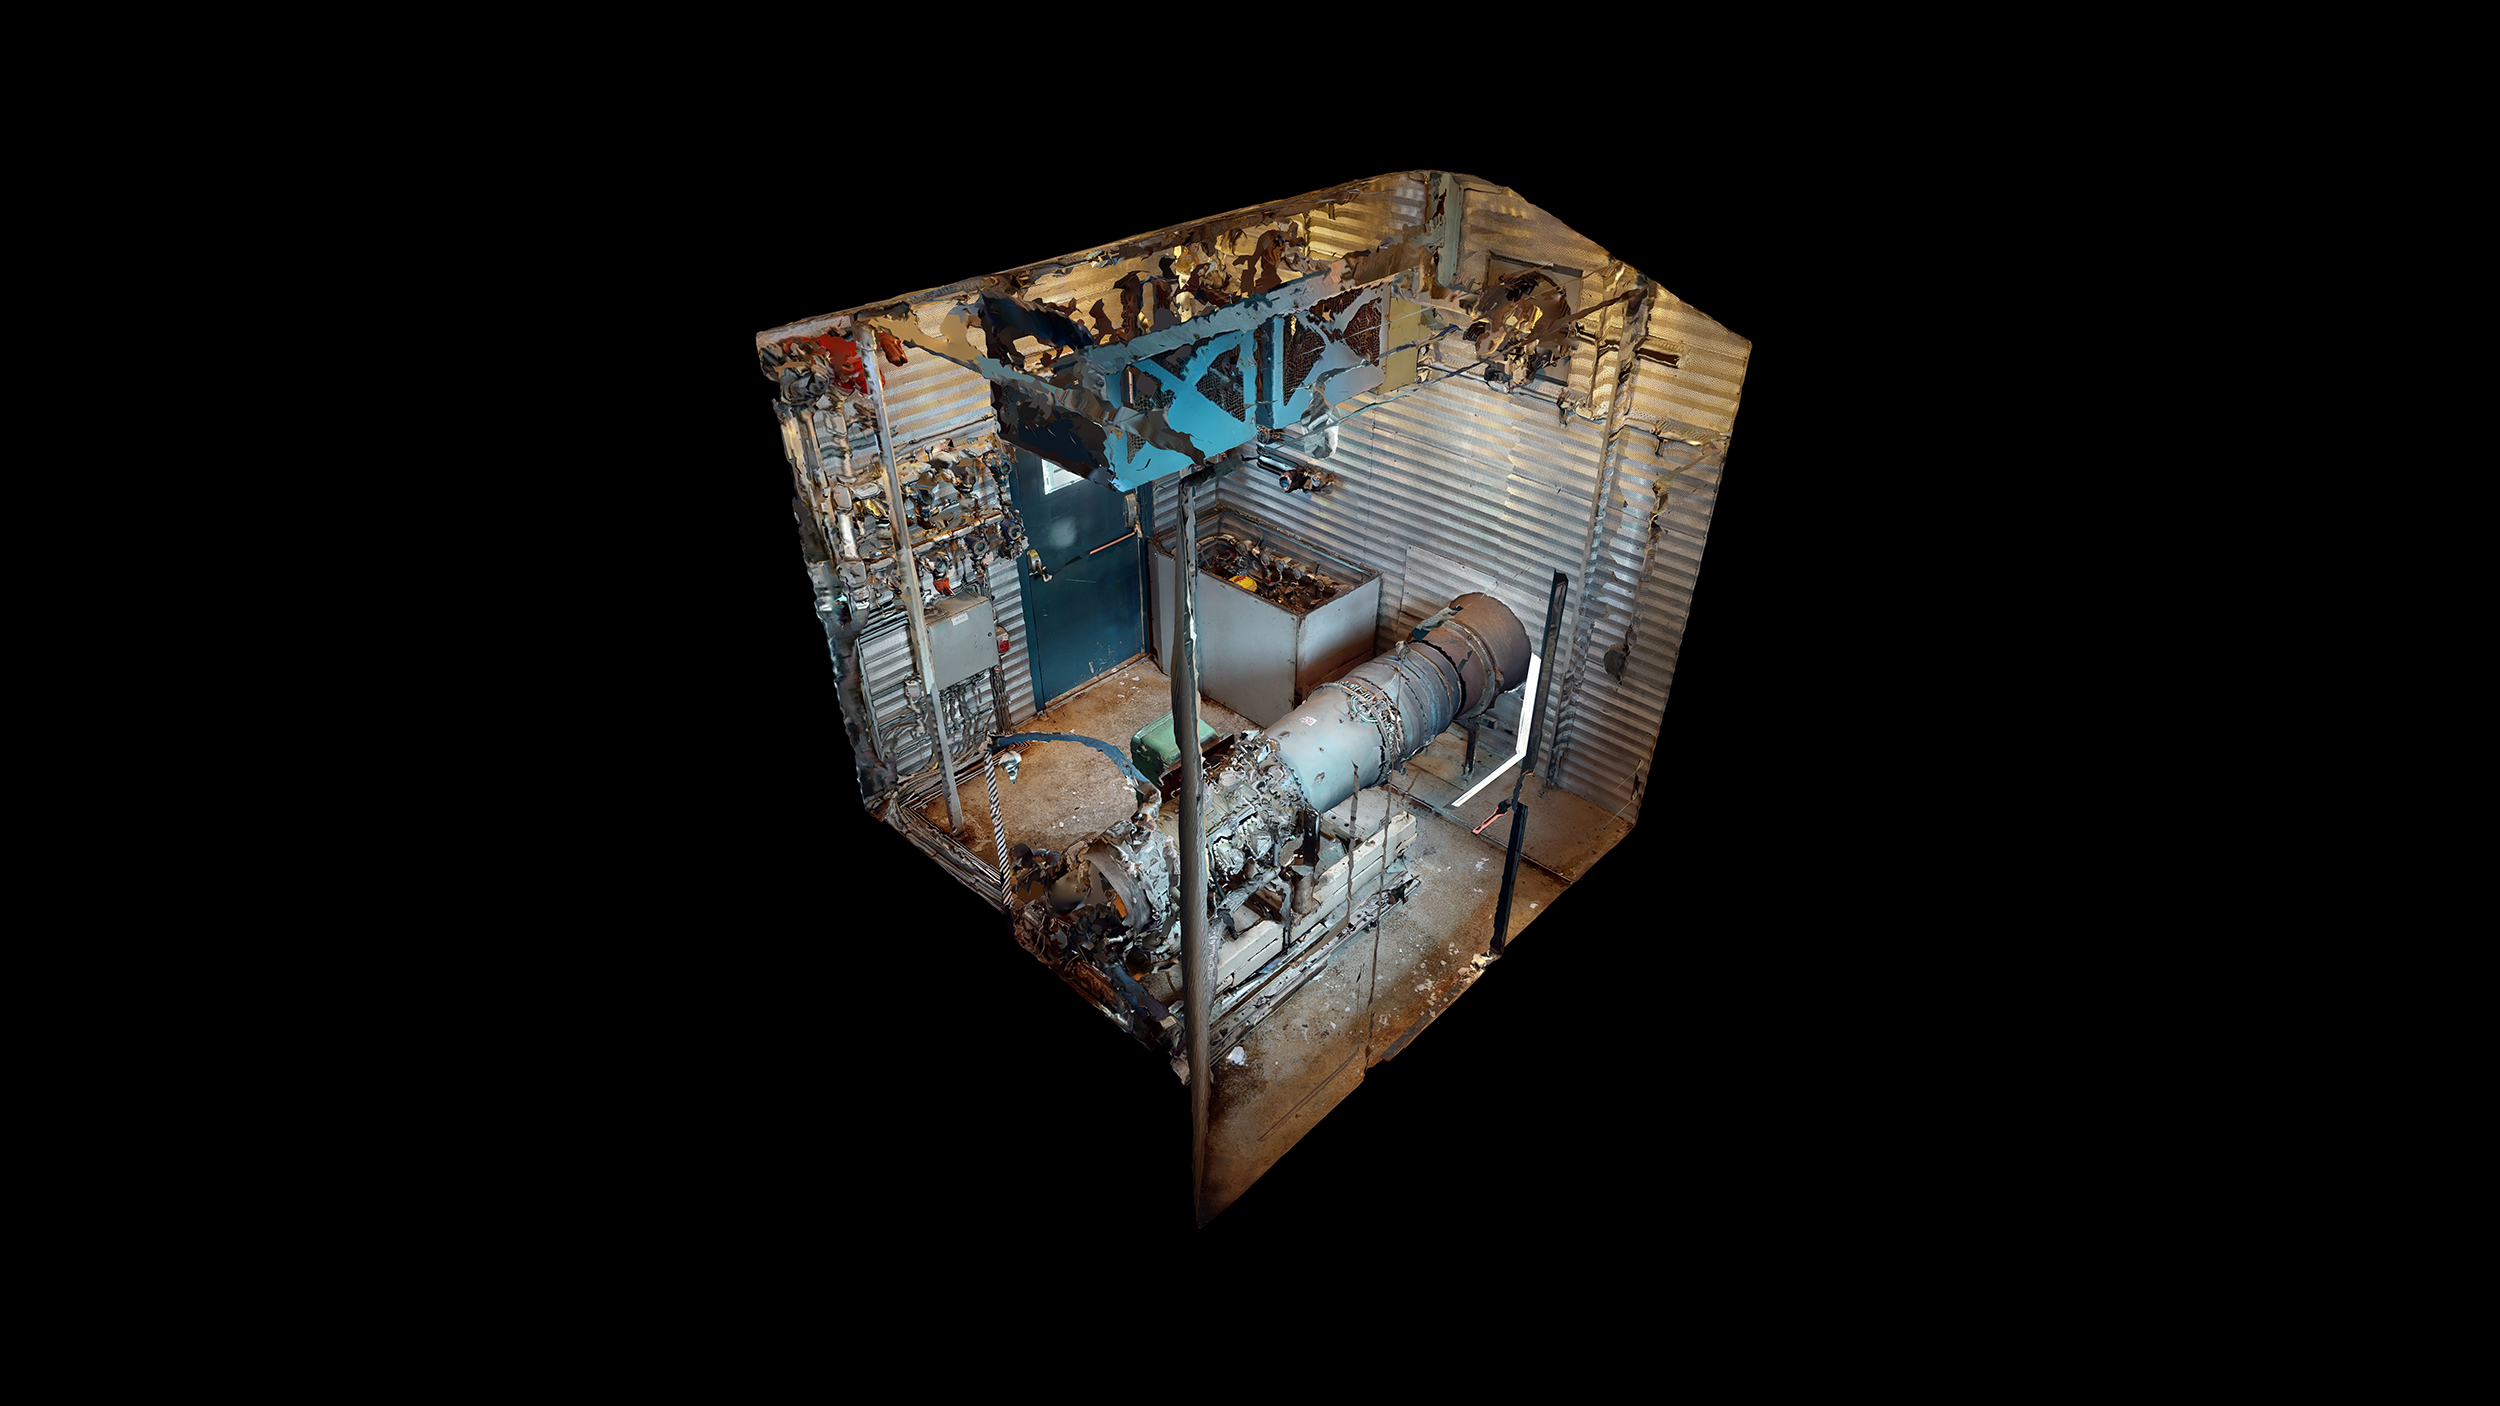 Interior 1 - natural gas turbine - Used 2500 kW / 2 MW Allison Natural Gas Turbine Generator Package for sale in Alberta